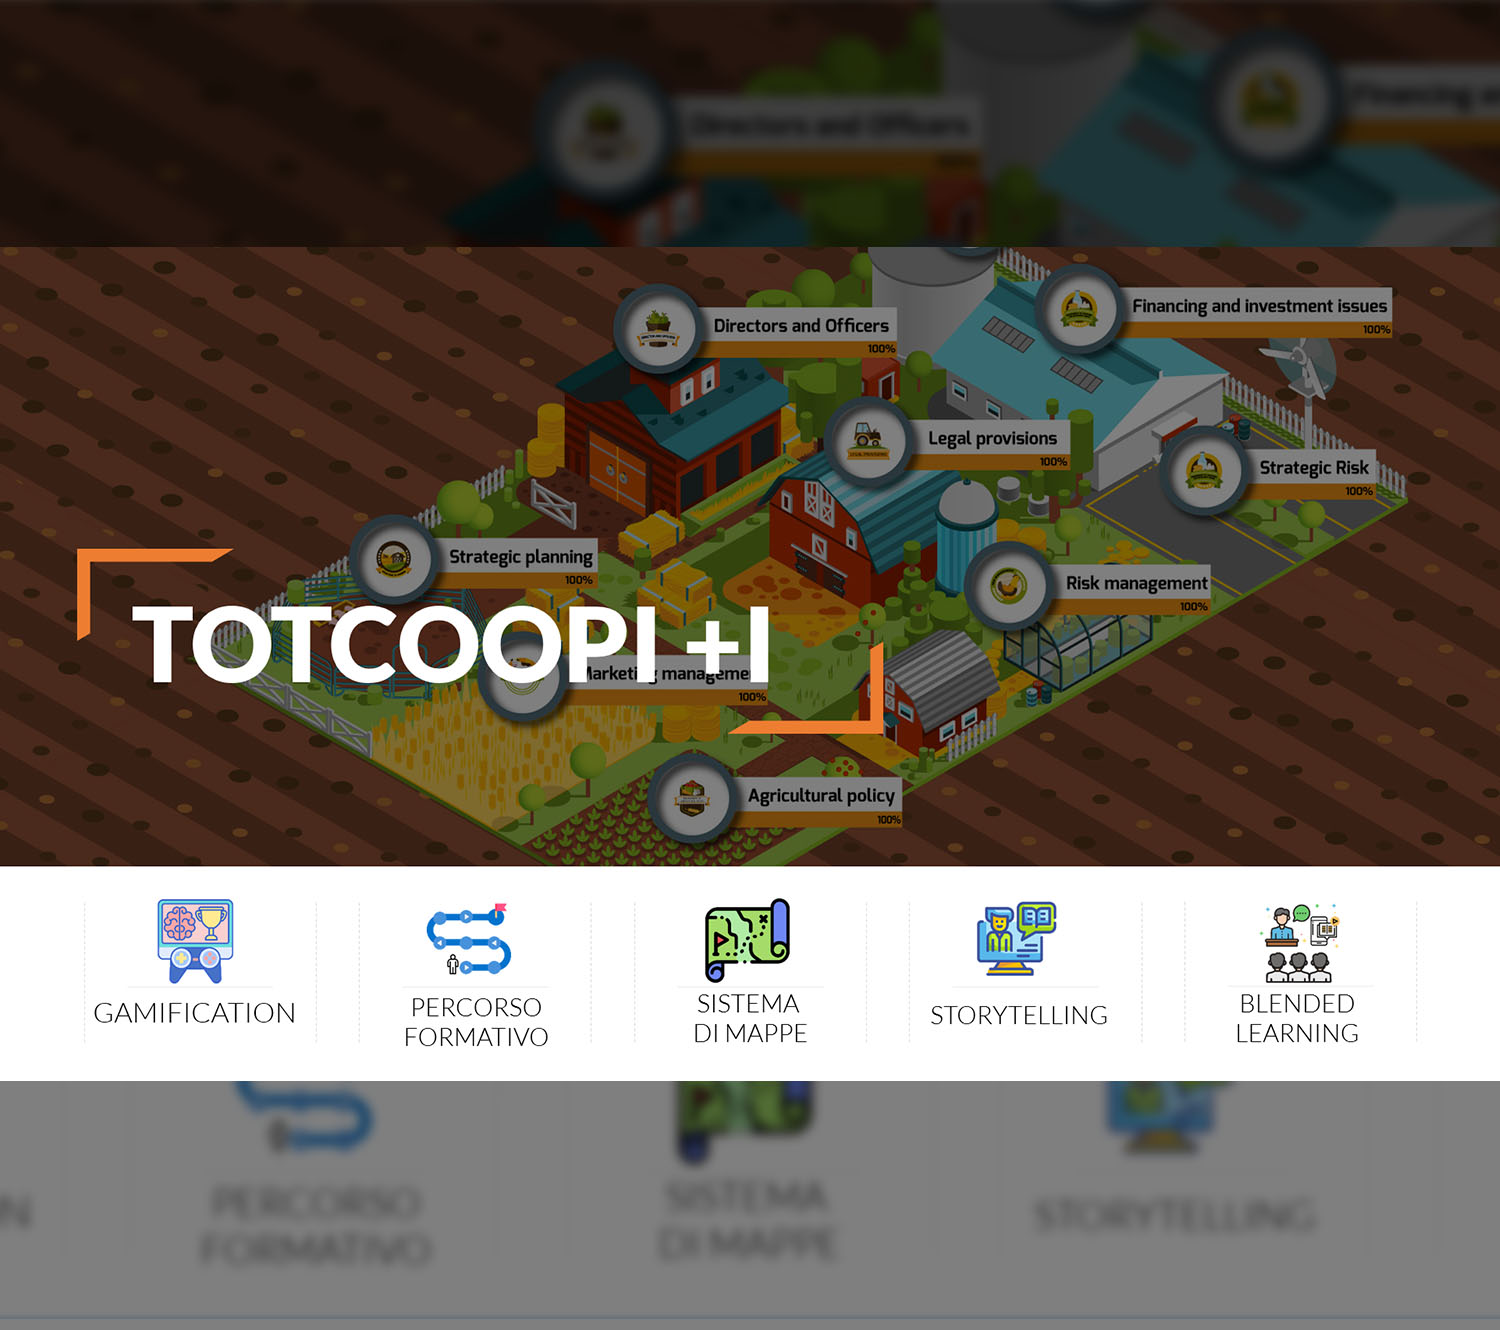 Grifo Multimedia - ToTCOOP+iTECH